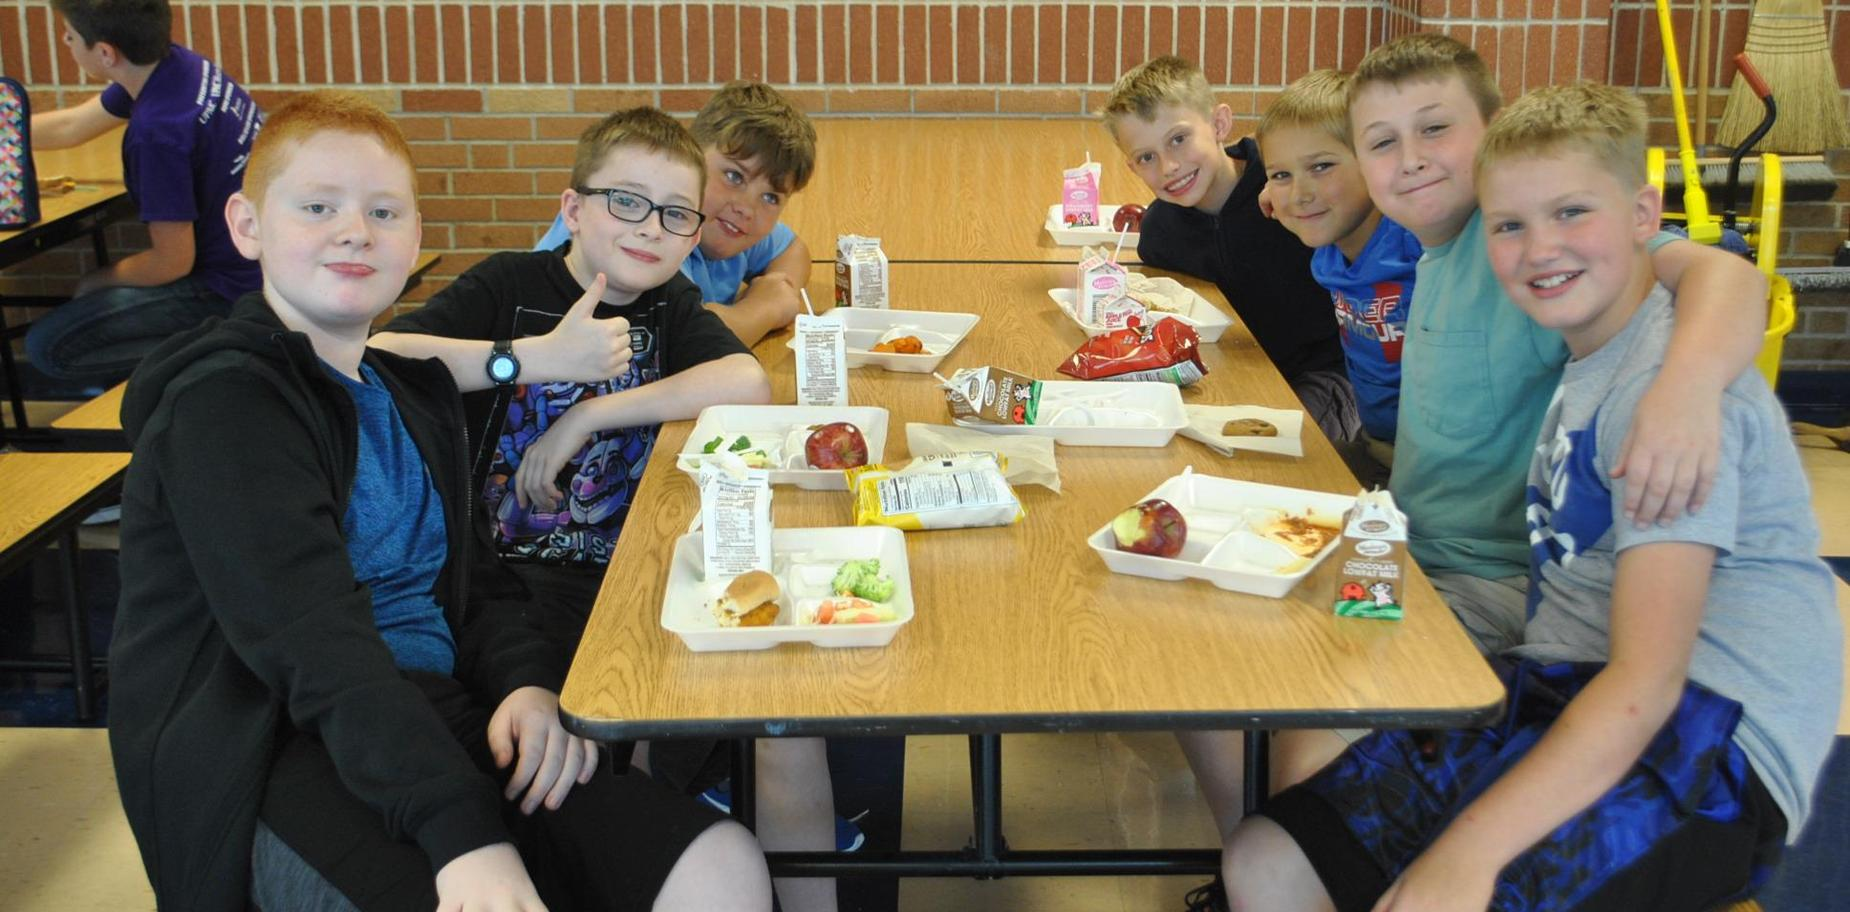 Boys at KMS lunch